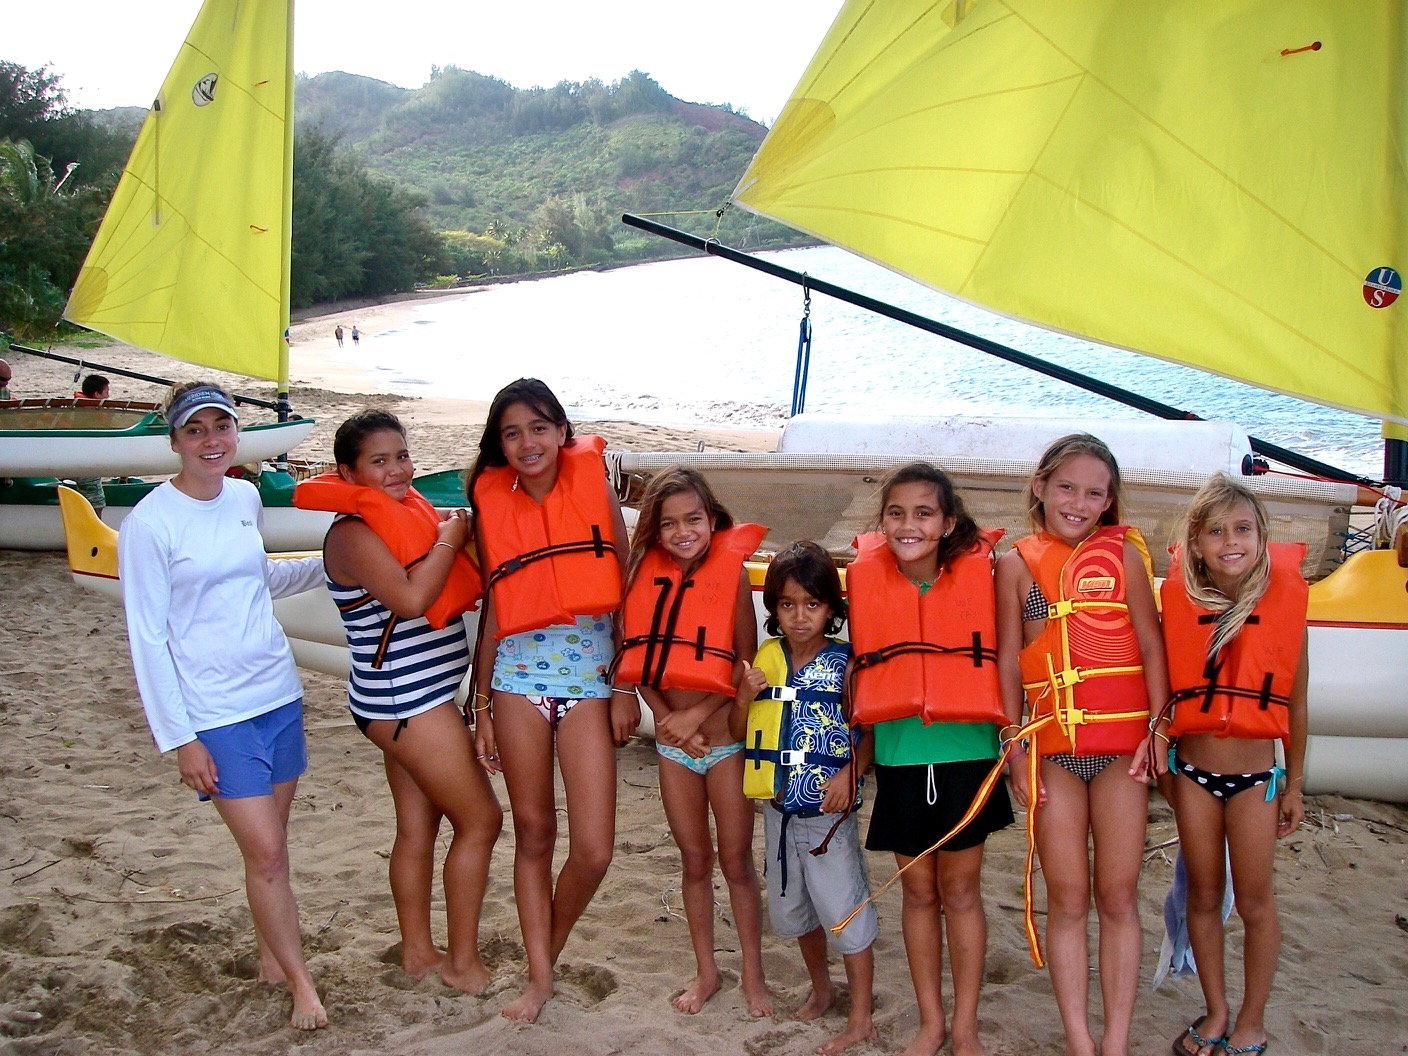 Summer Program Kids for Sailing and Water Safety1.jpg